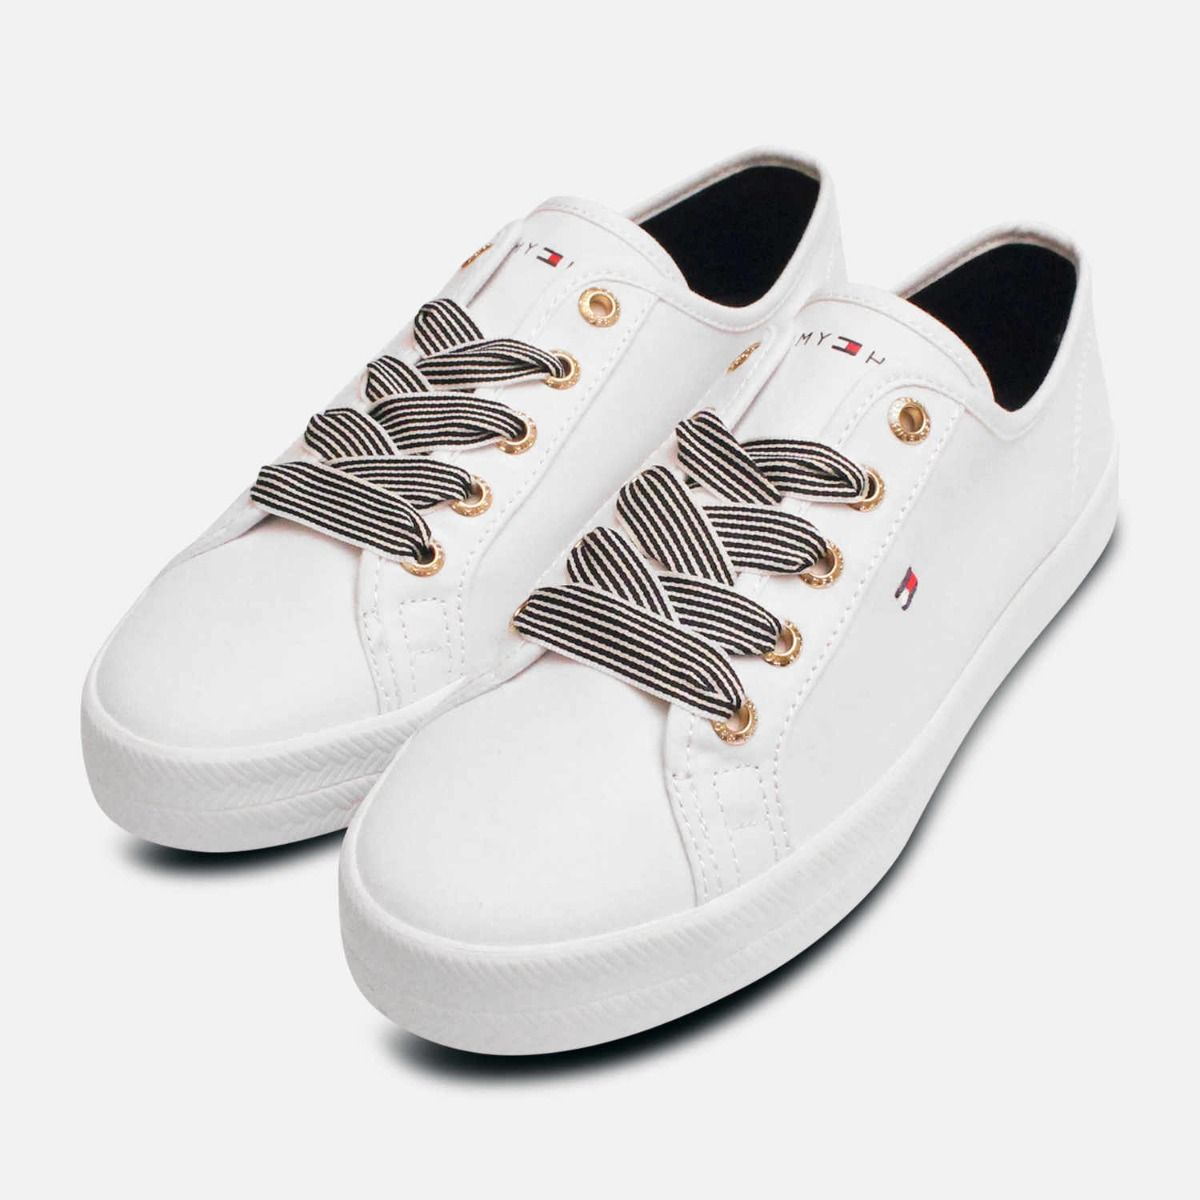 Tommy Hilfiger White Canvas Nautical